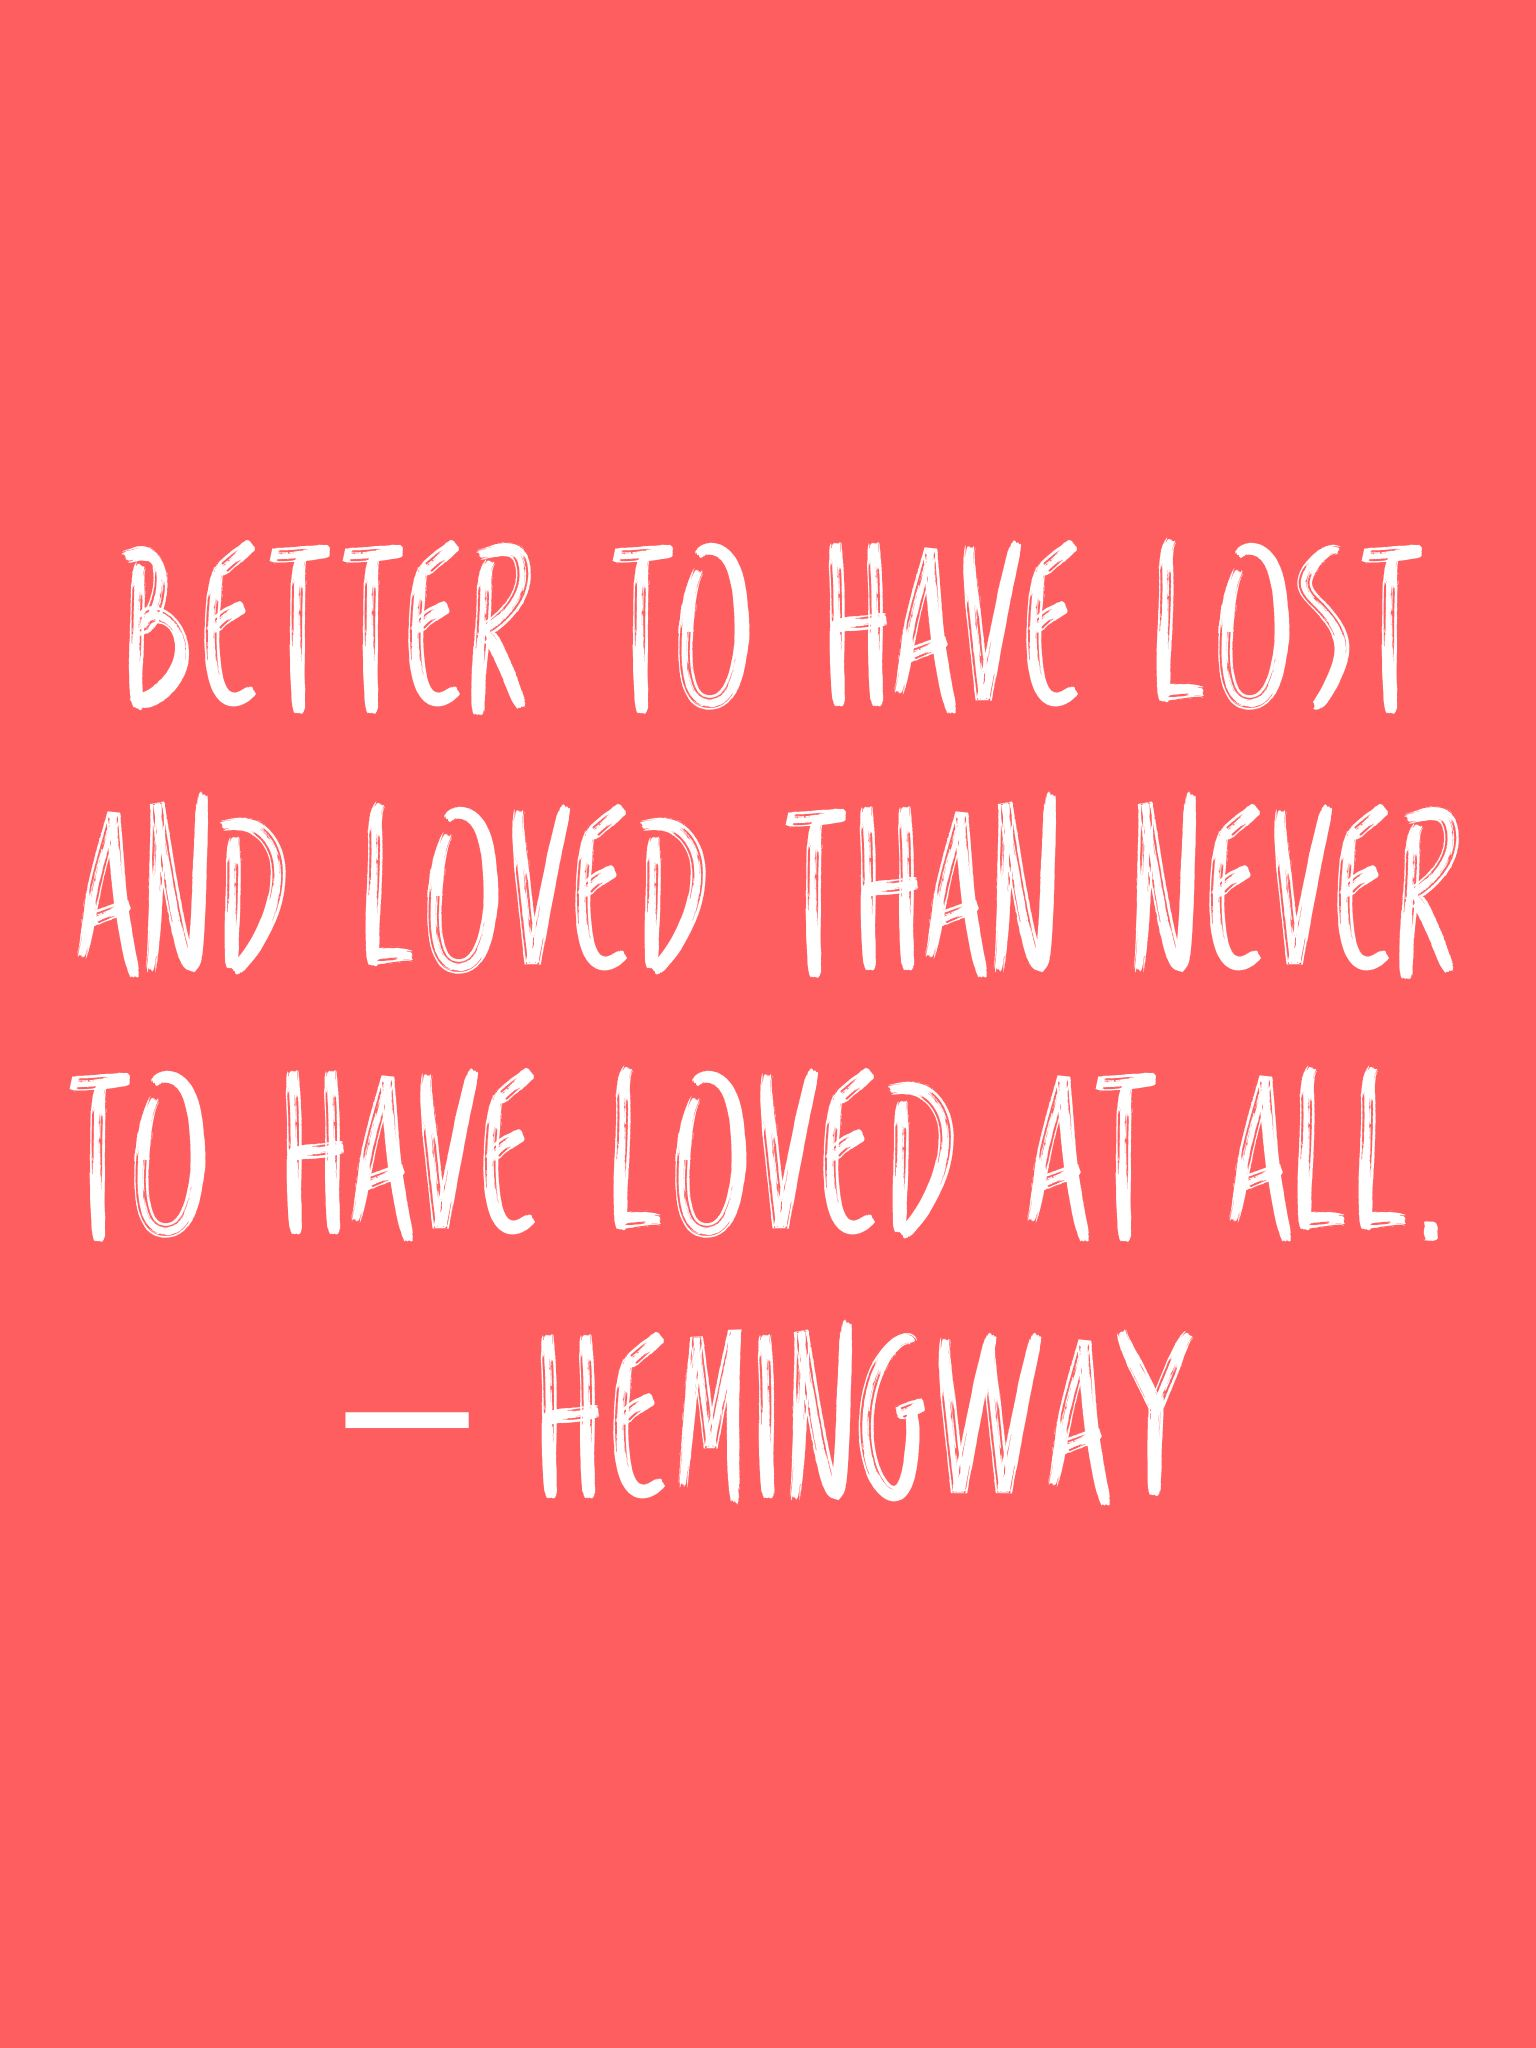 Love Quotes App Mesmerizing Better To Have Lost And Loved Than Never To Have Loved At All